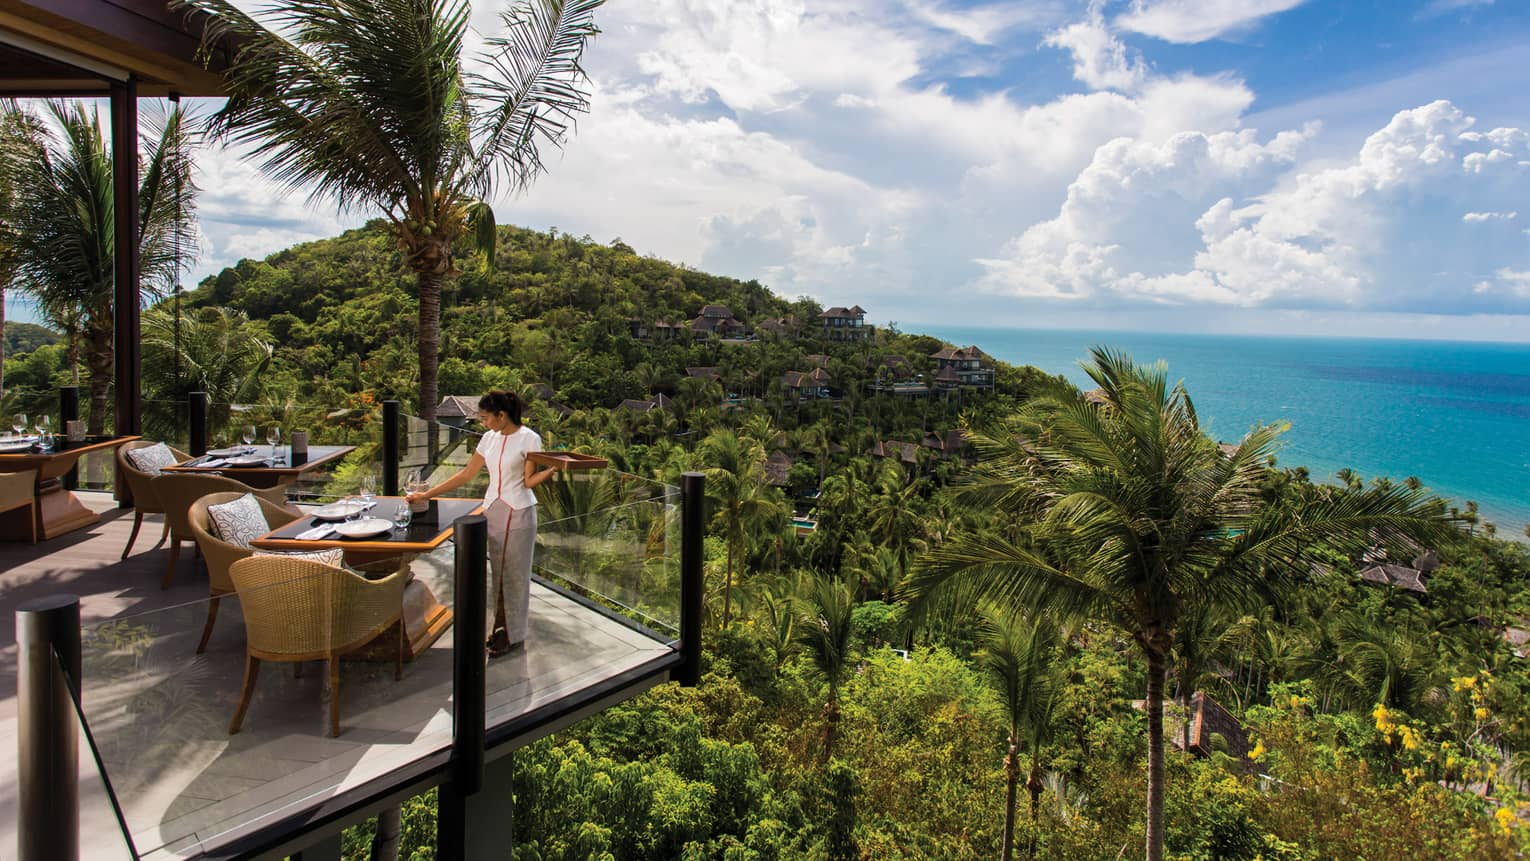 Server sets corner patio table behind glass balcony, high on tropical mountain